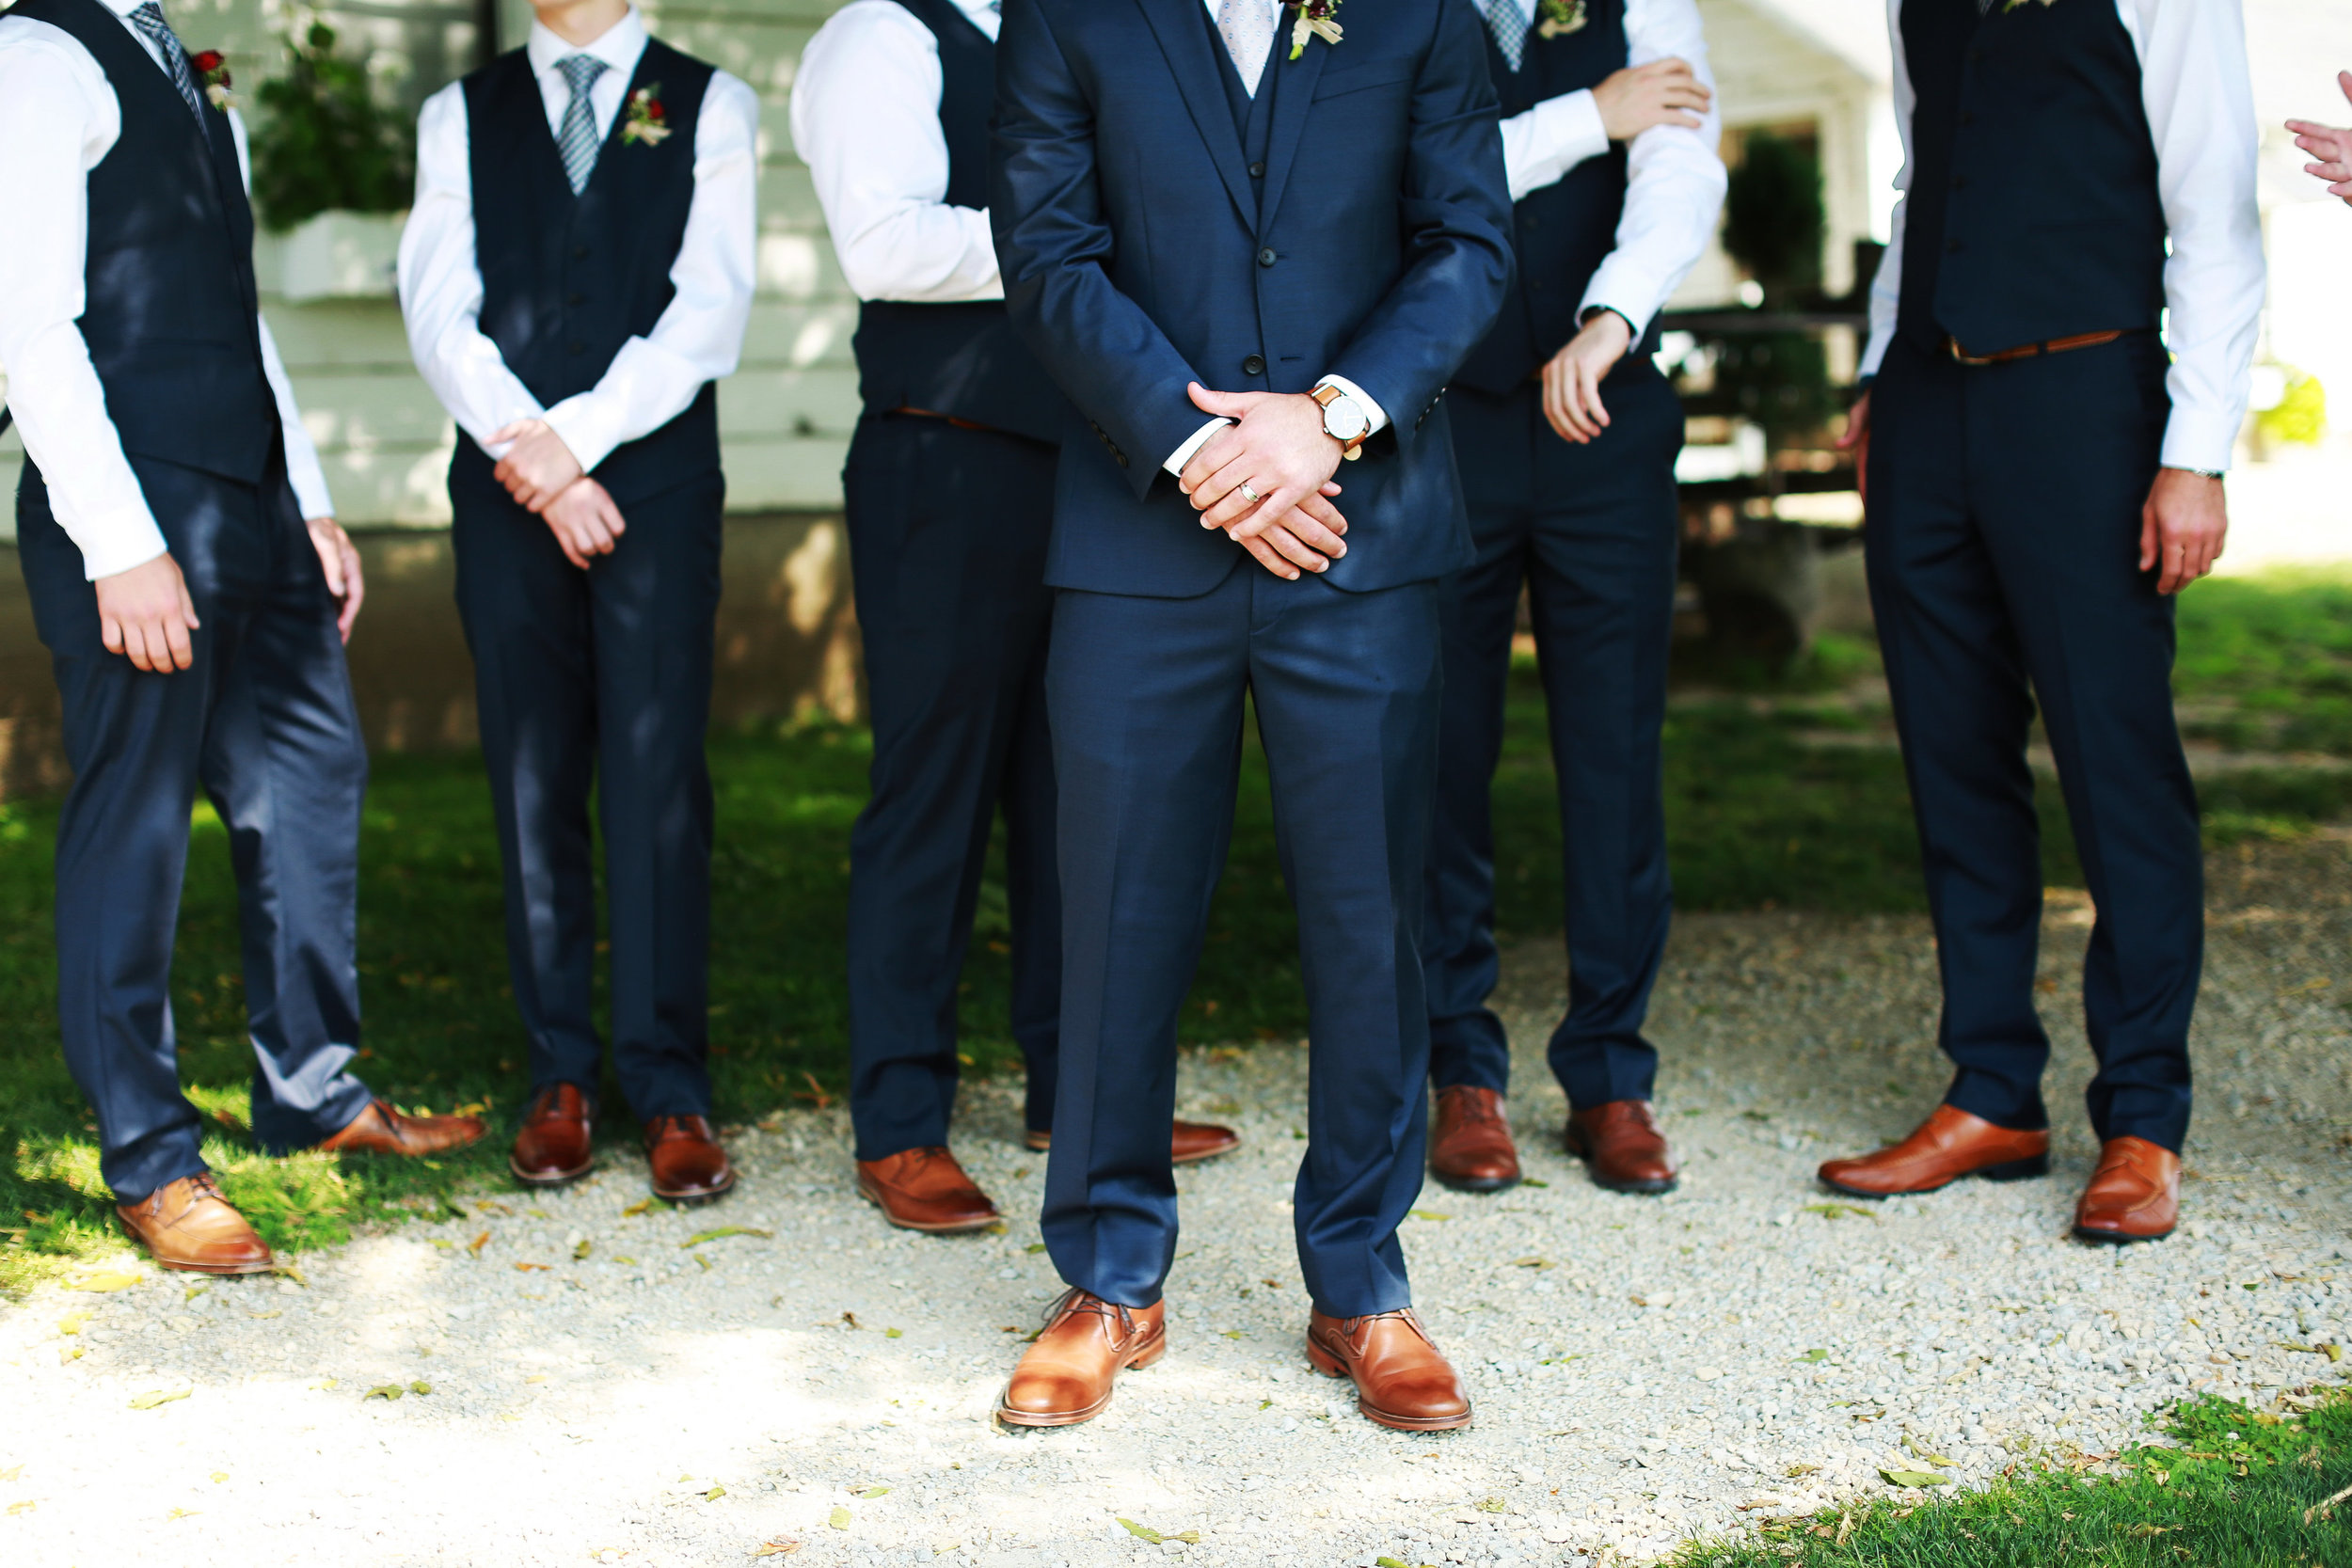 Jenna Kevin Wedding   Sixpence Events day of coordinating   Hannah Schmitt Photography   Legacy Hill Farm   groomsmen with navy vests and striped ties and brown shoes